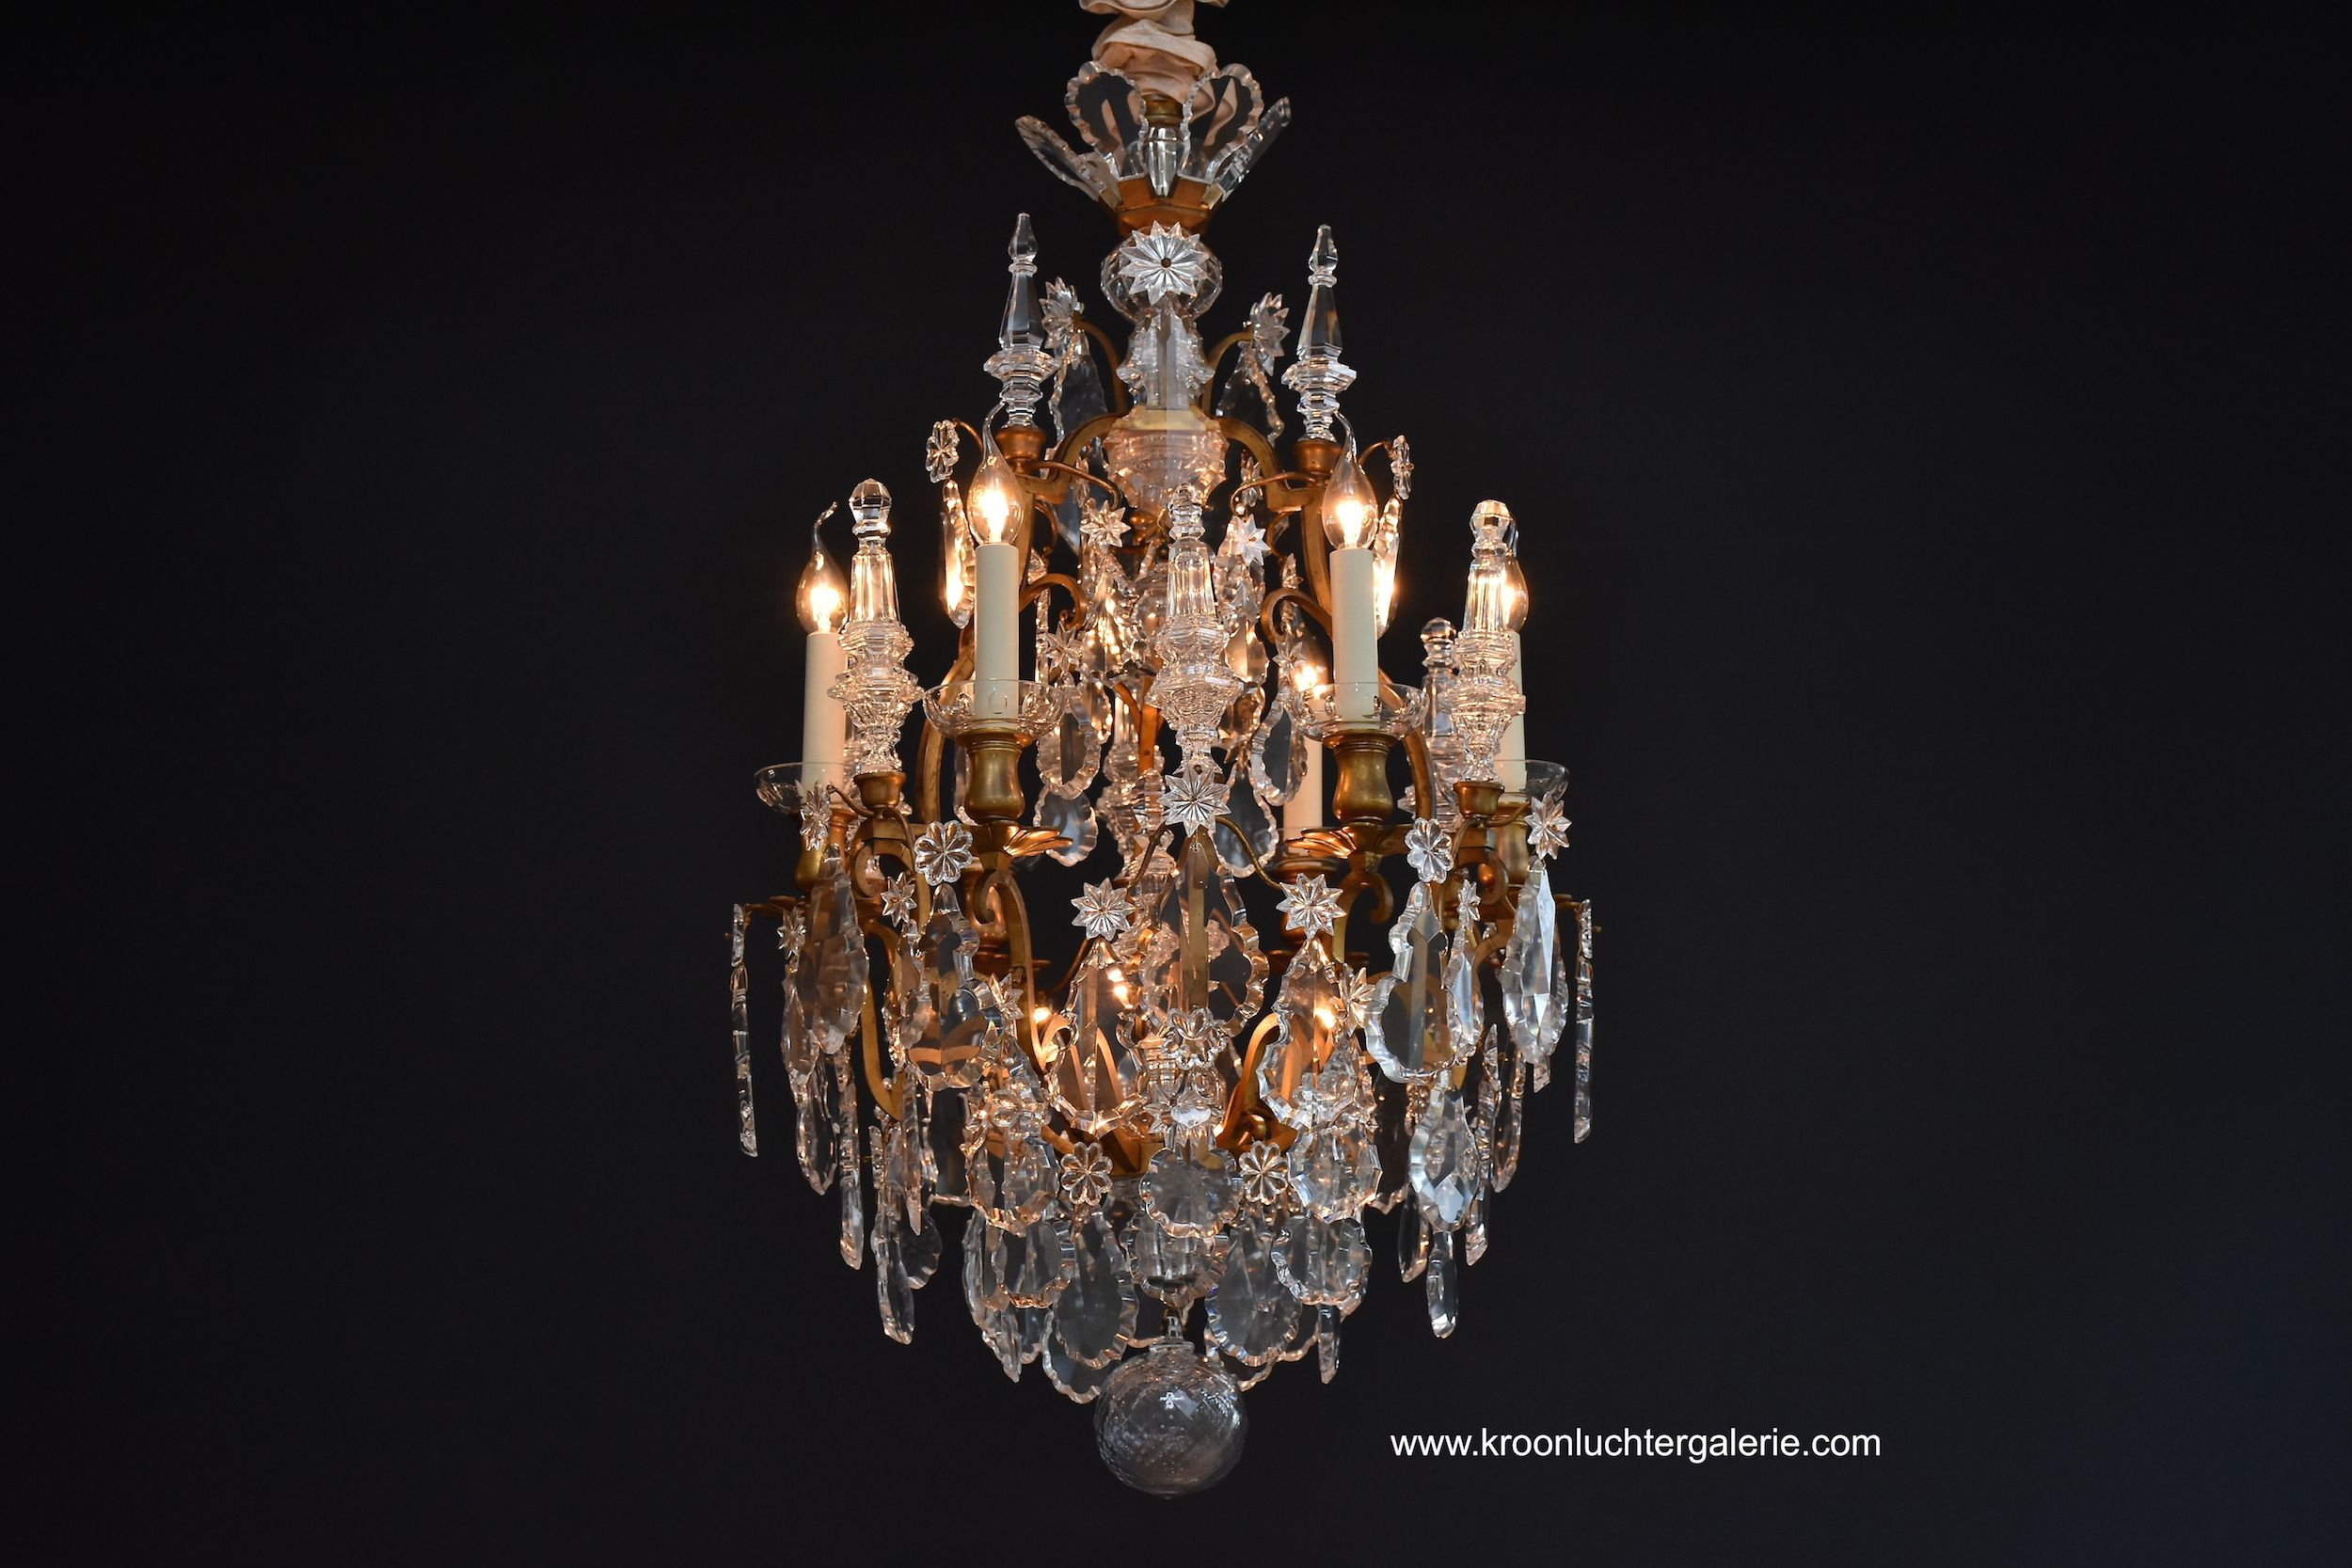 Baccarat chandelier 'lustre cage' with 9 light